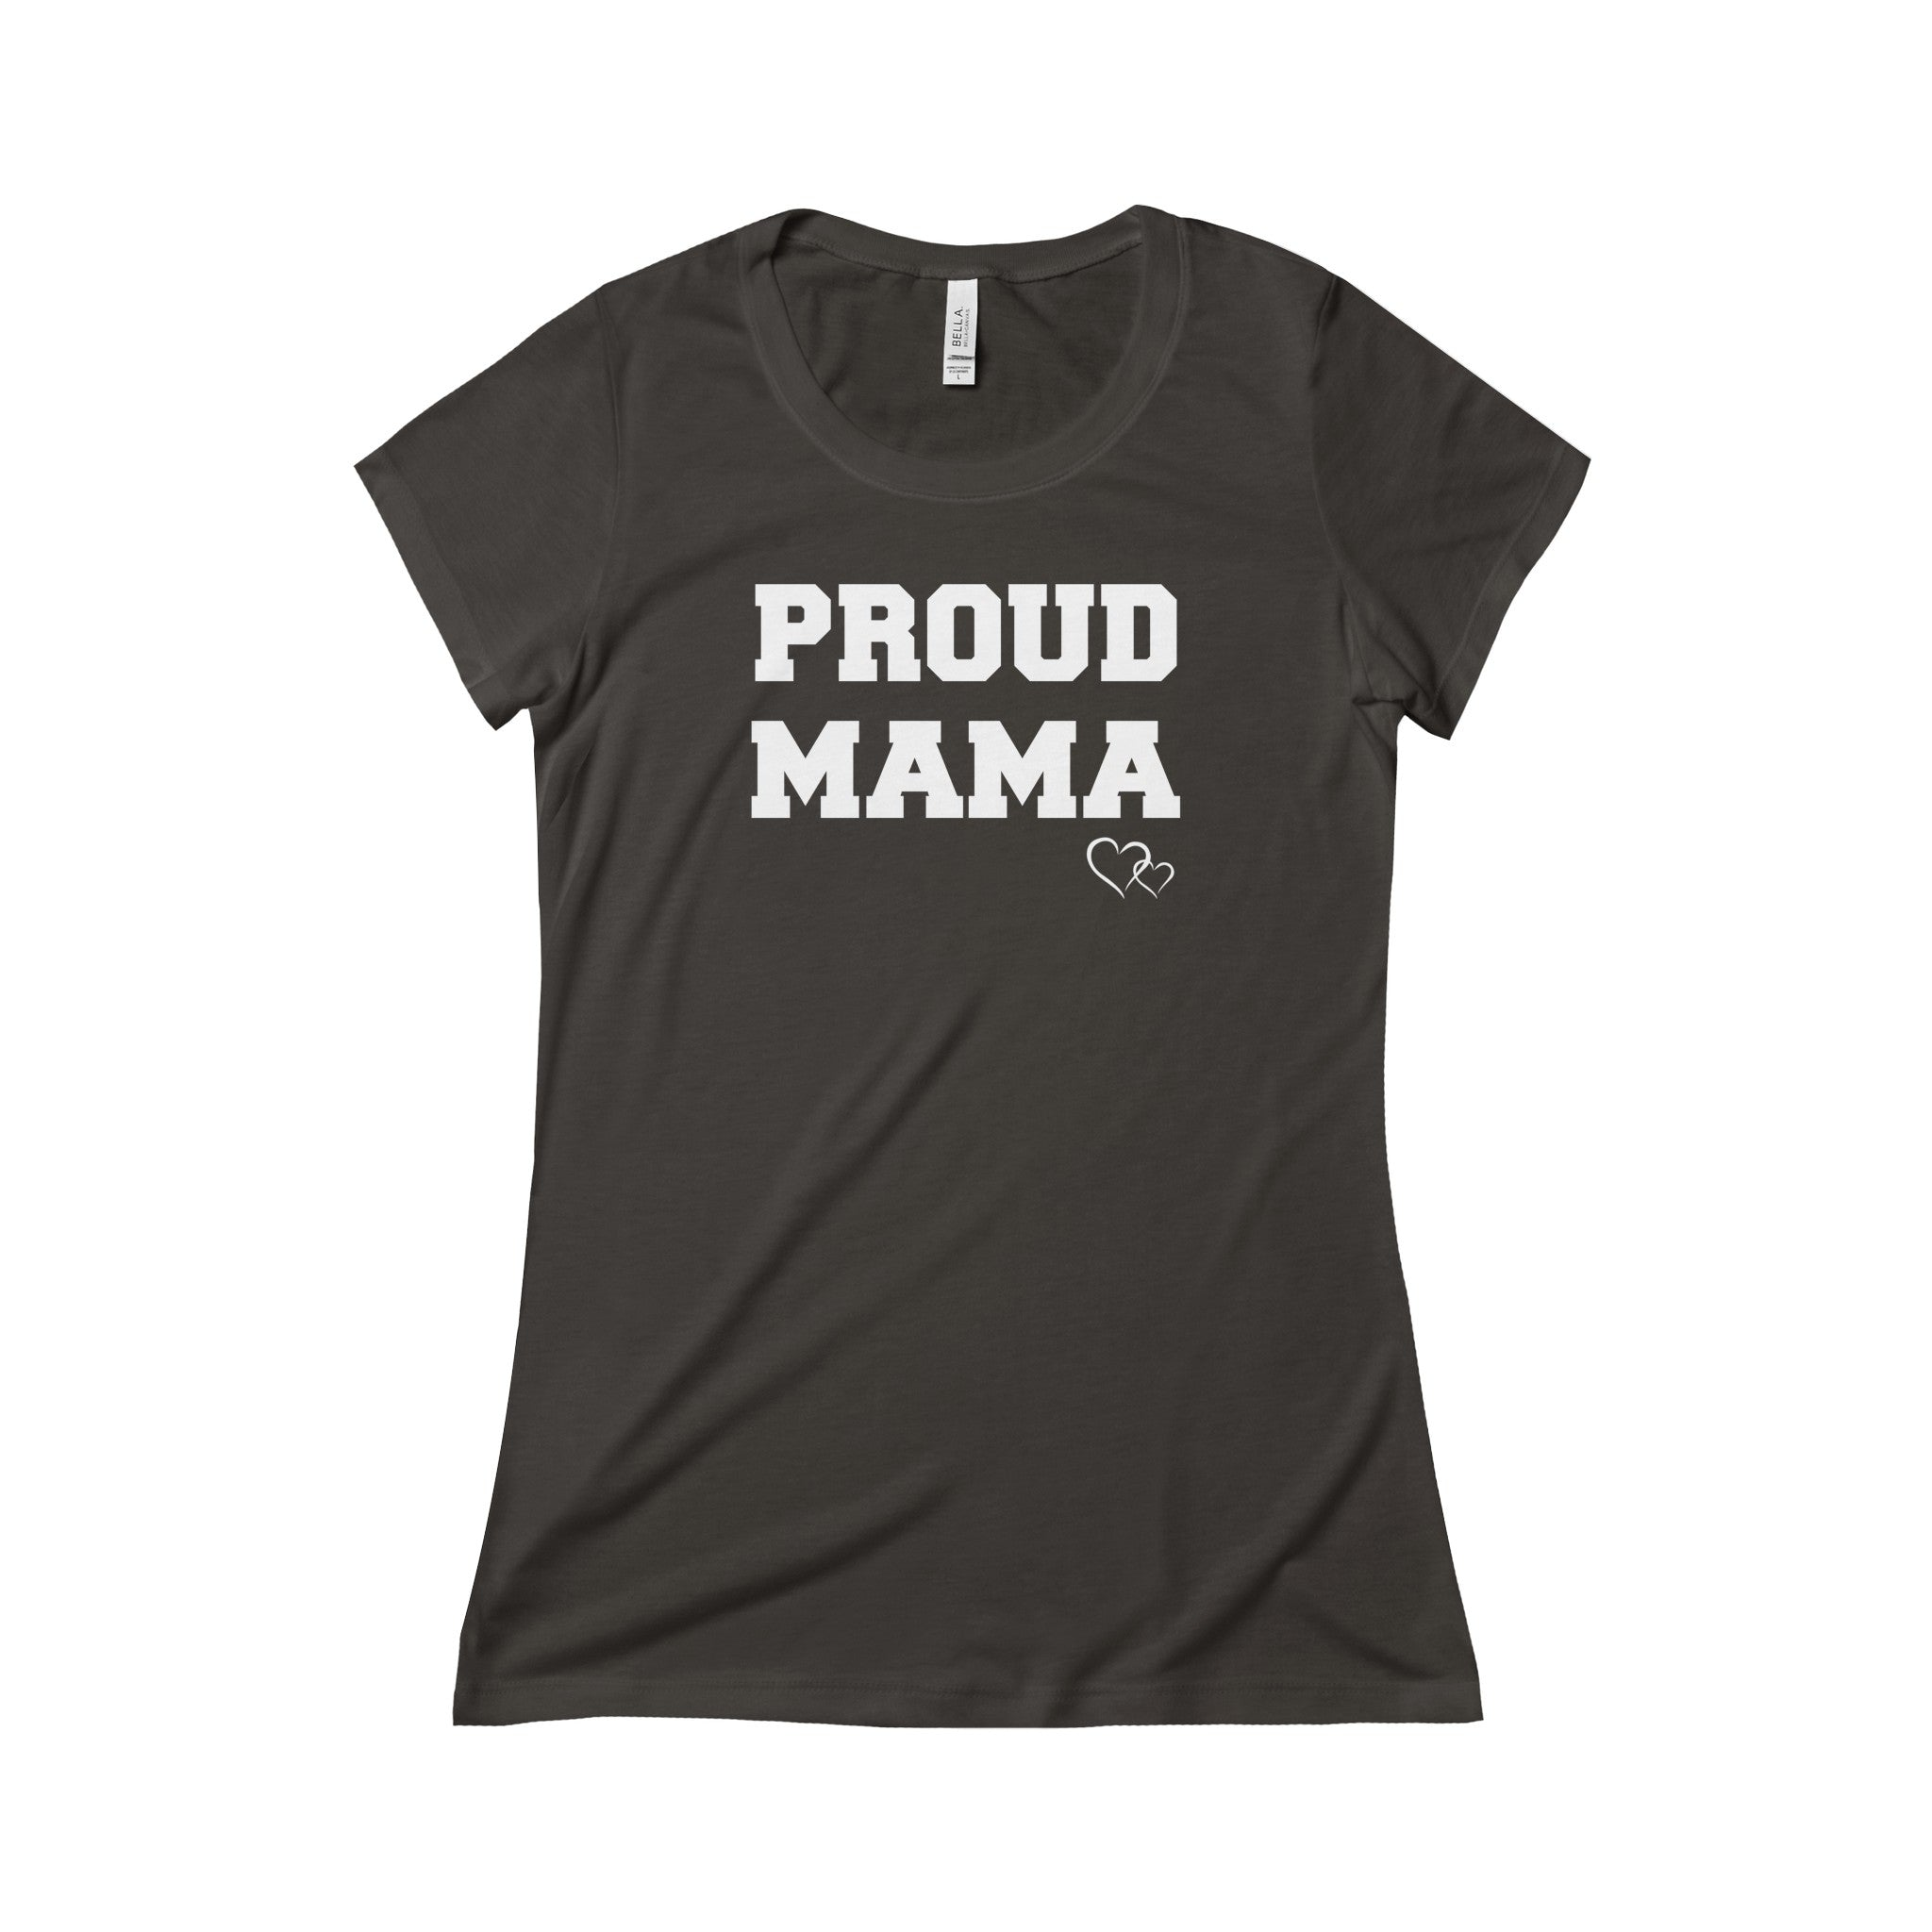 PROUD MAMA - Triblend Short Sleeve